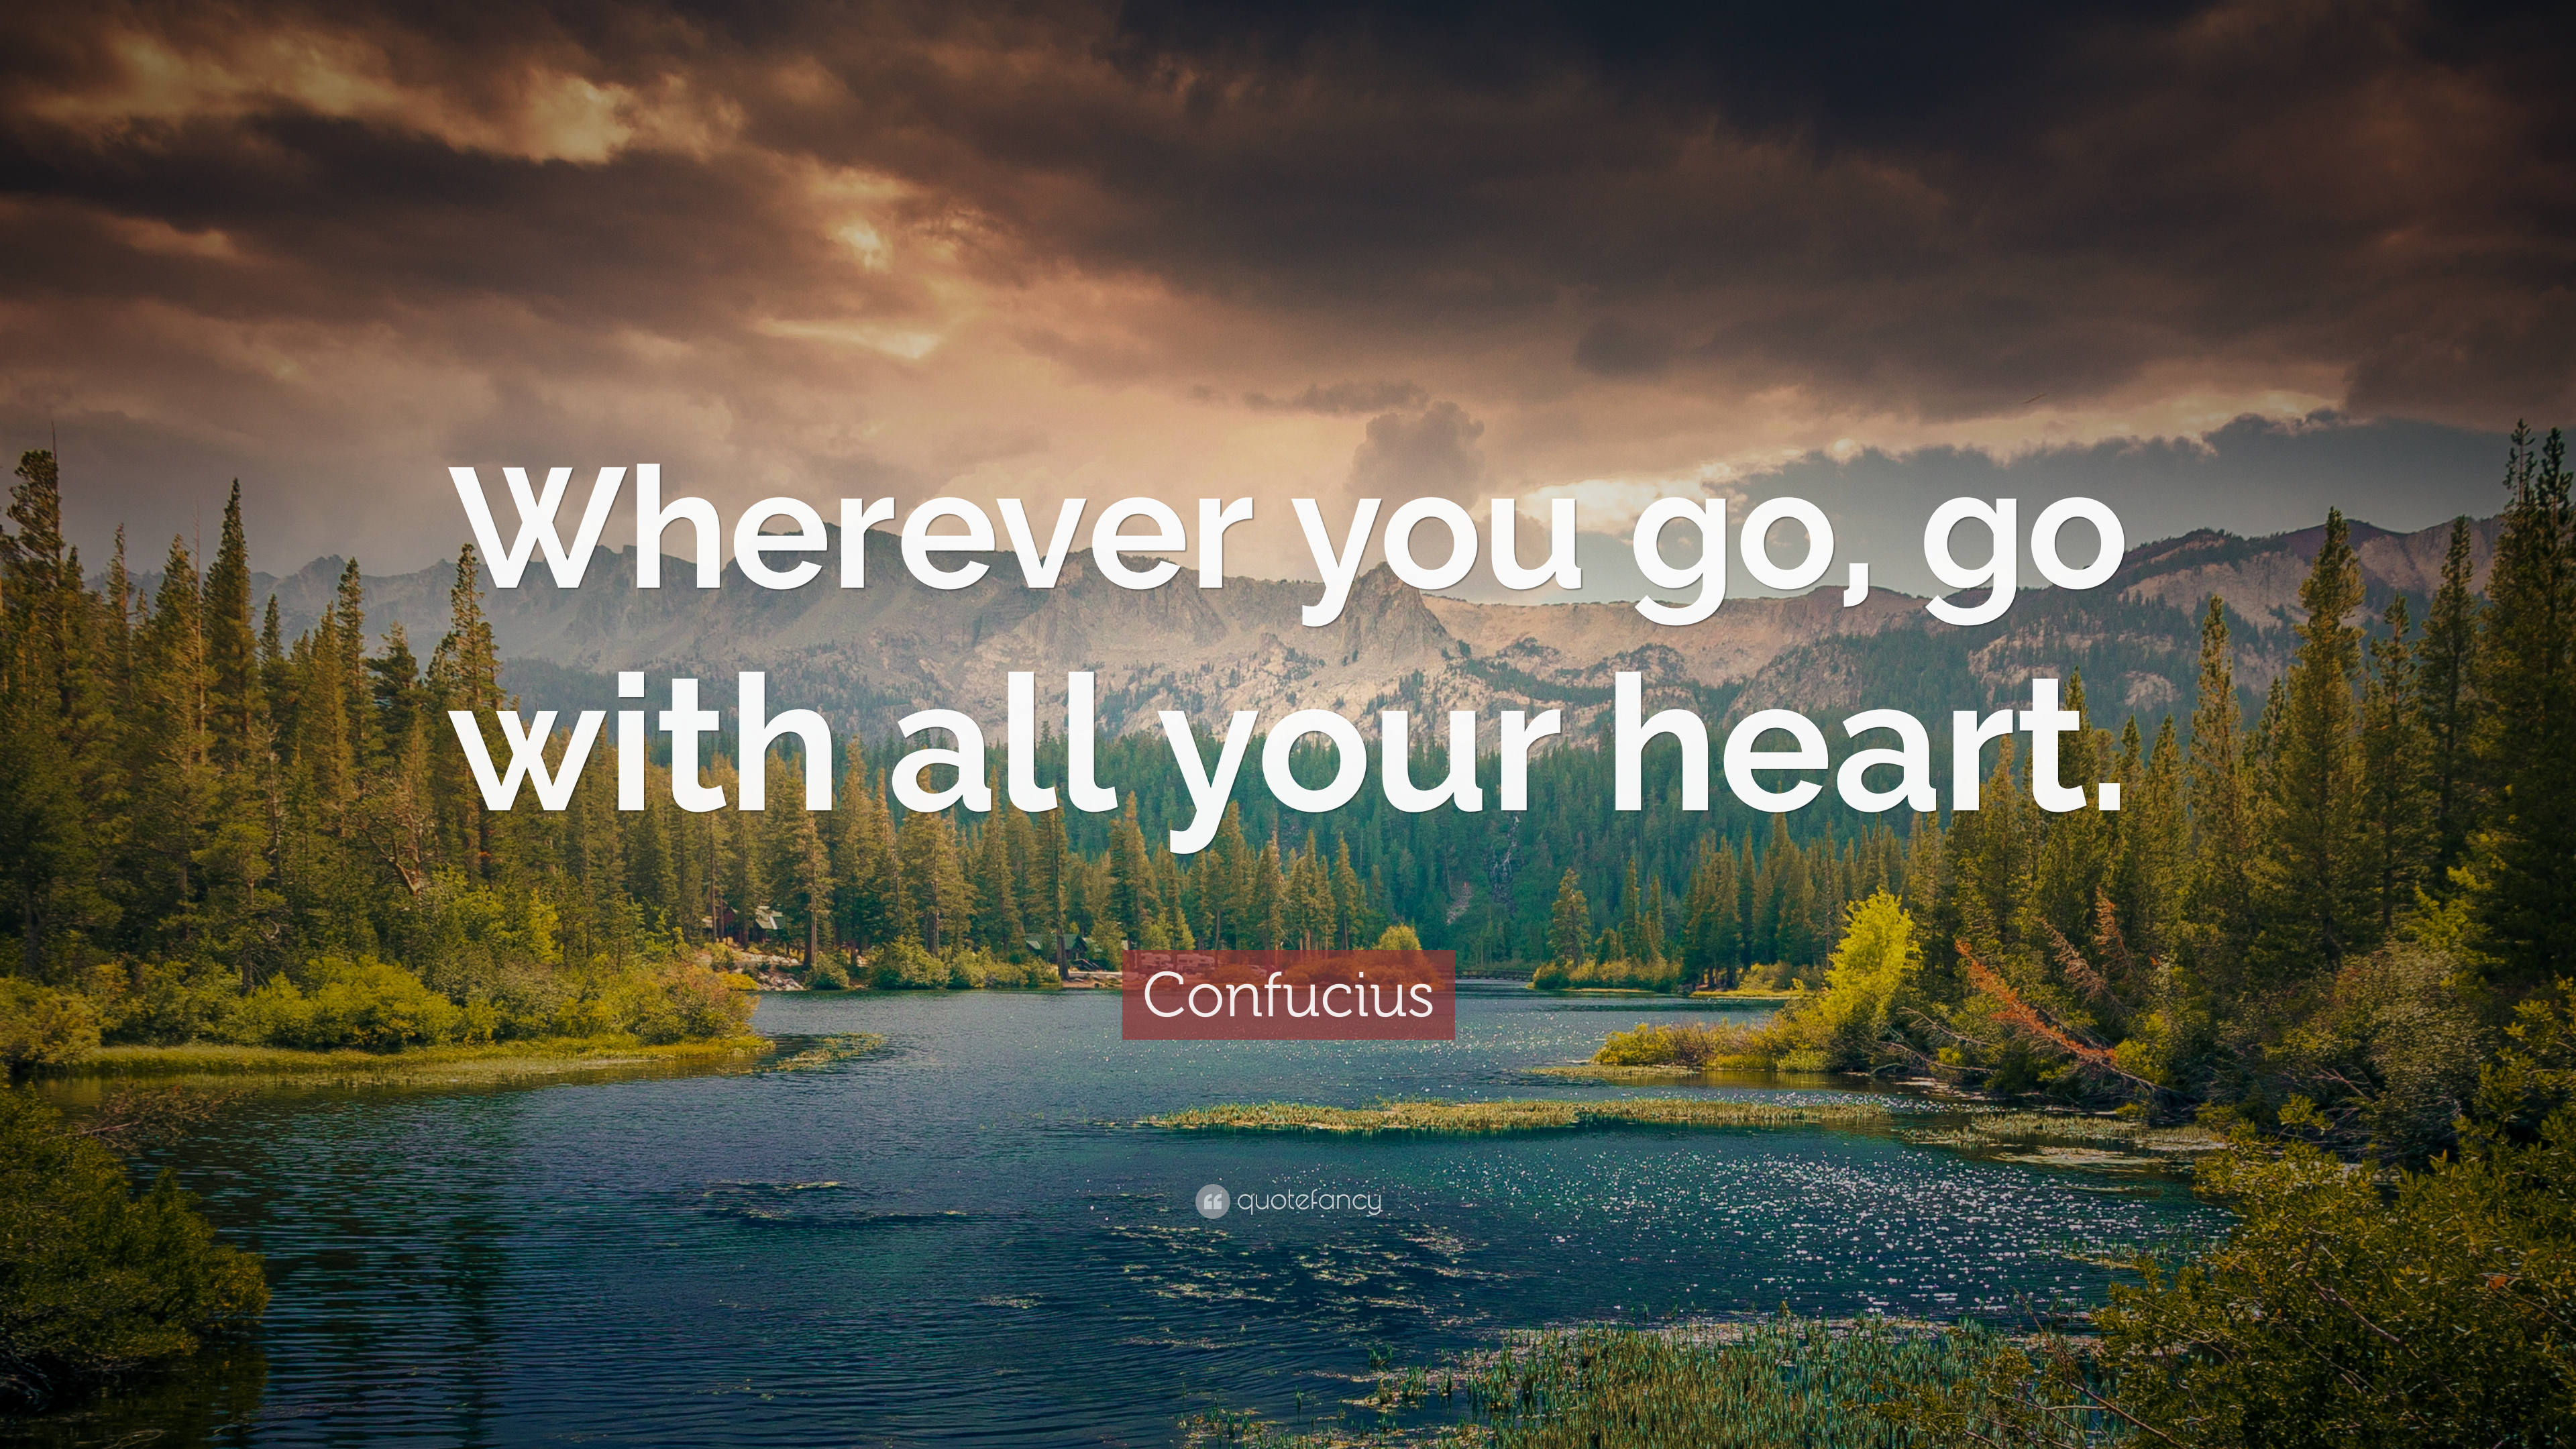 2001846-Confucius-Quote-Wherever-you-go-go-with-all-your-heart.jpg